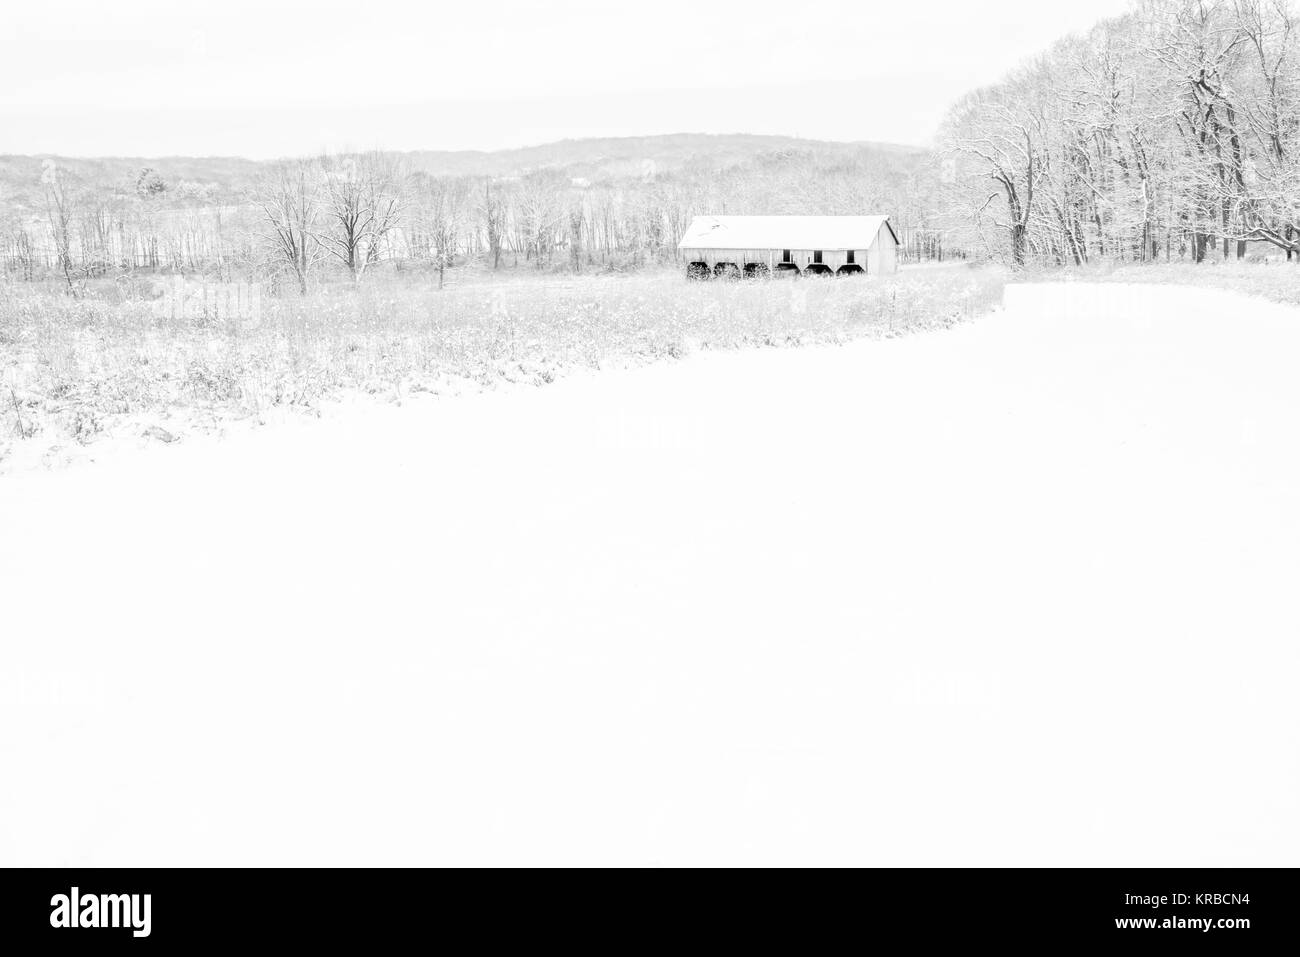 Minimalist black and white old farm barn background. Rural winter scenery - Stock Image